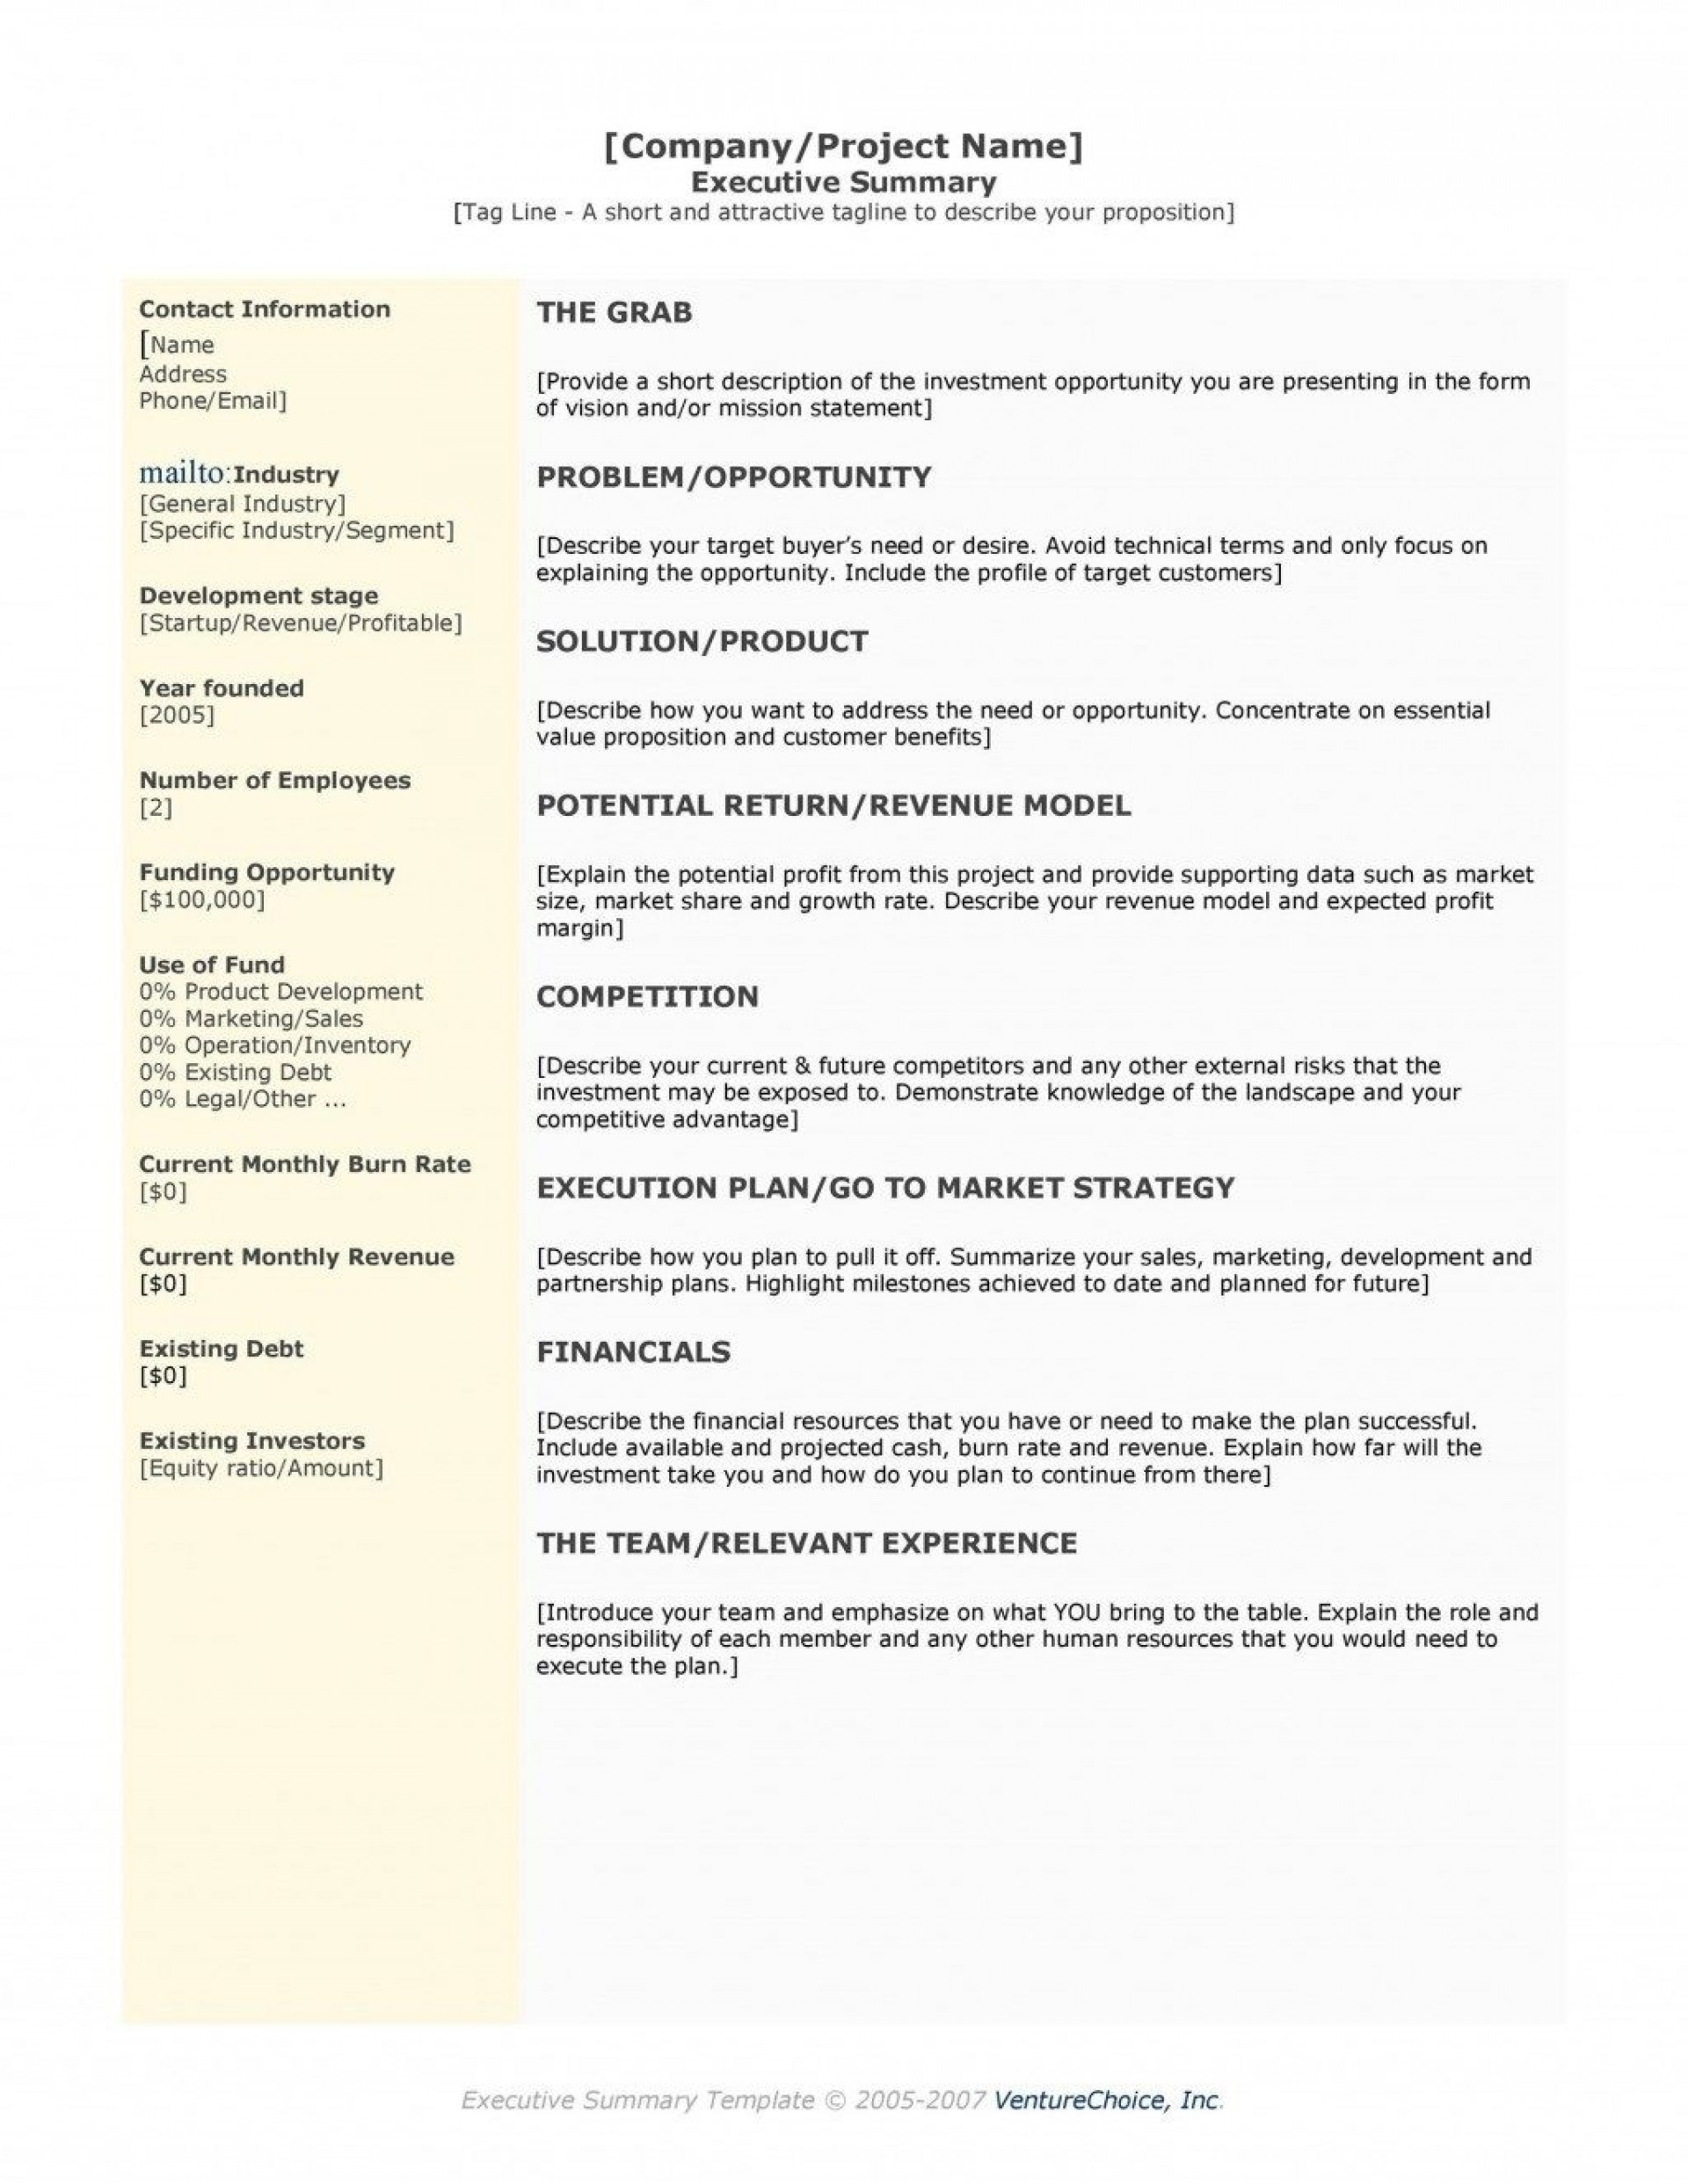 009 Formidable Executive Summary Template Word Free Highest Quality 1920